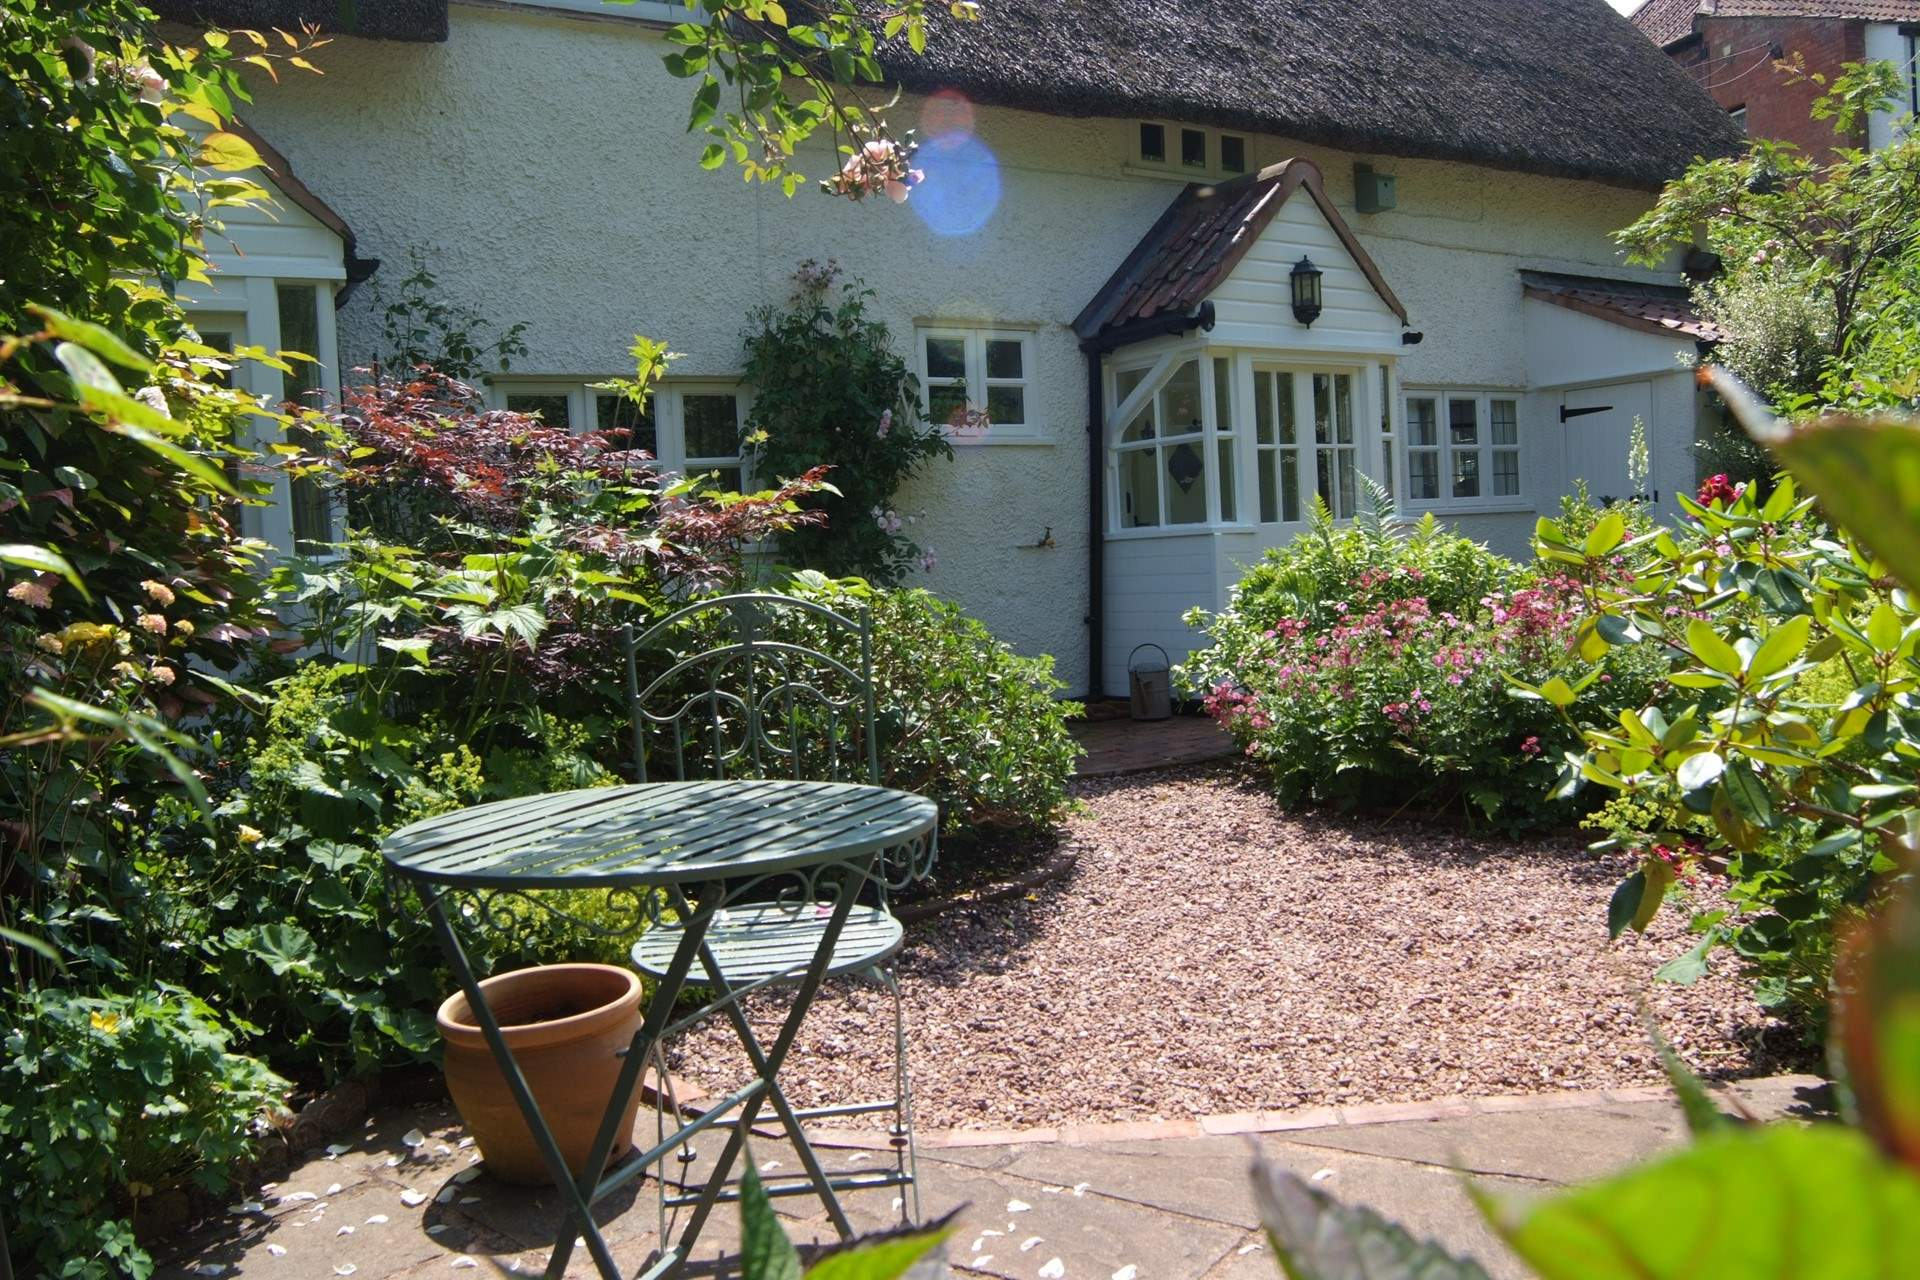 Brookside Cottage Is A Beautiful Period Property In A Tranquil Village  Setting, Right On The